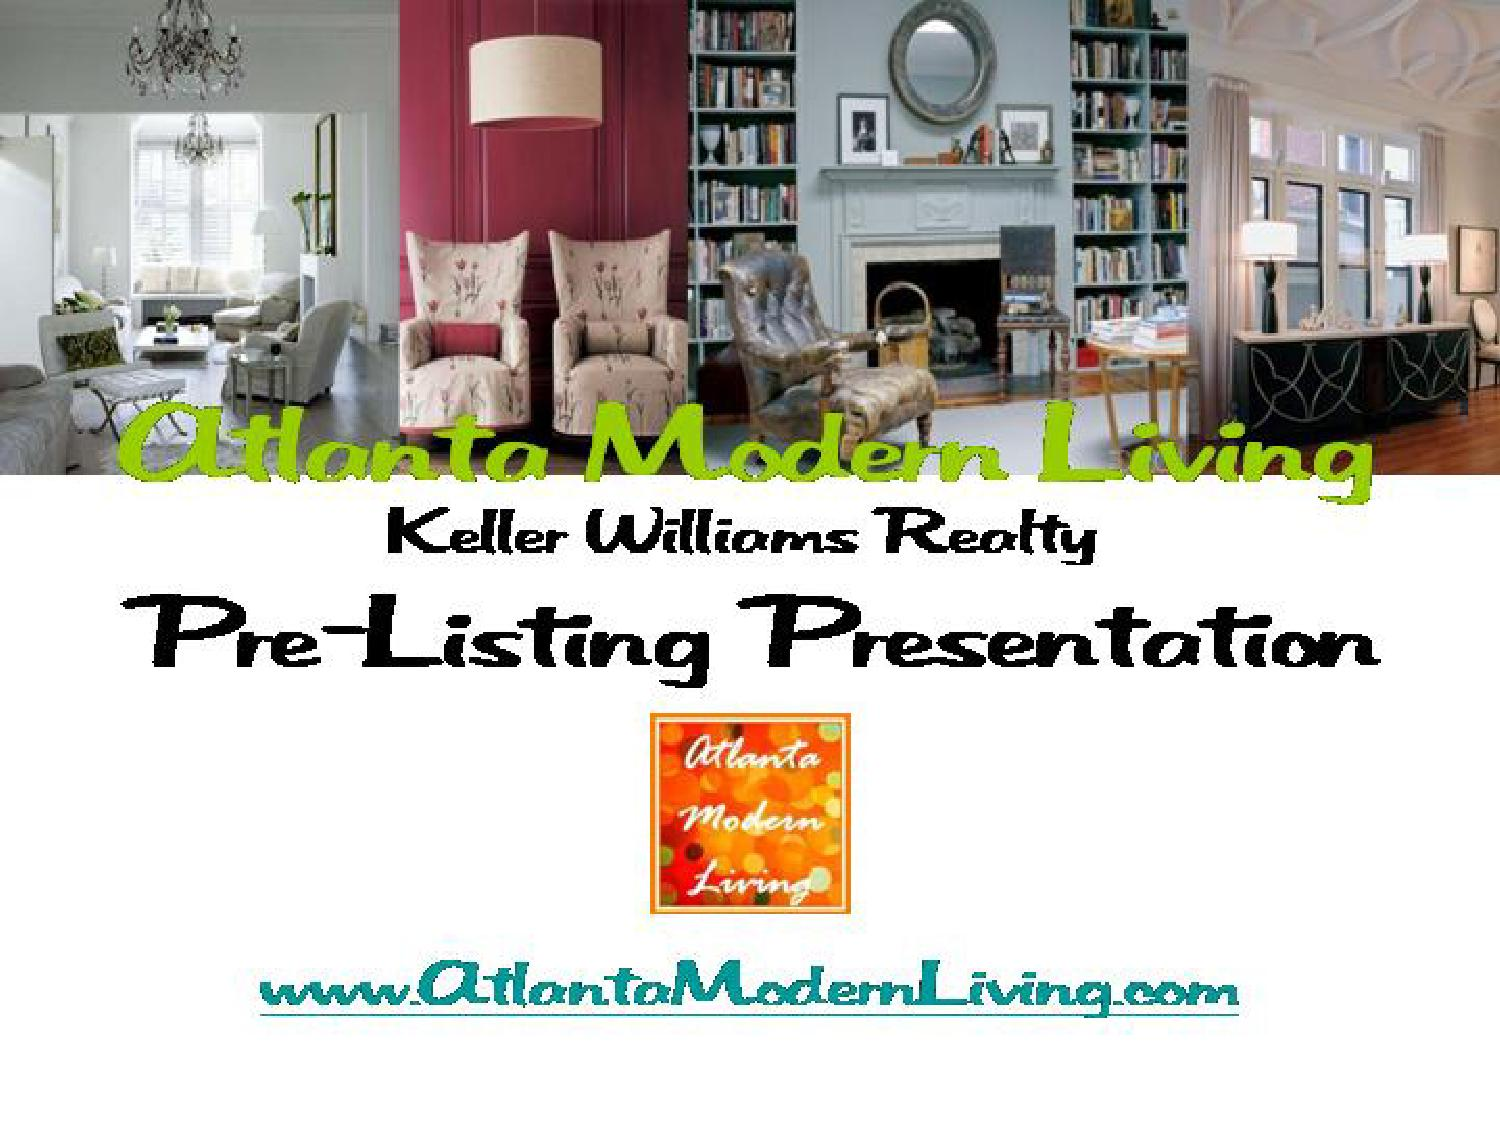 Ignite Presentation Listing Williams Logo Keller